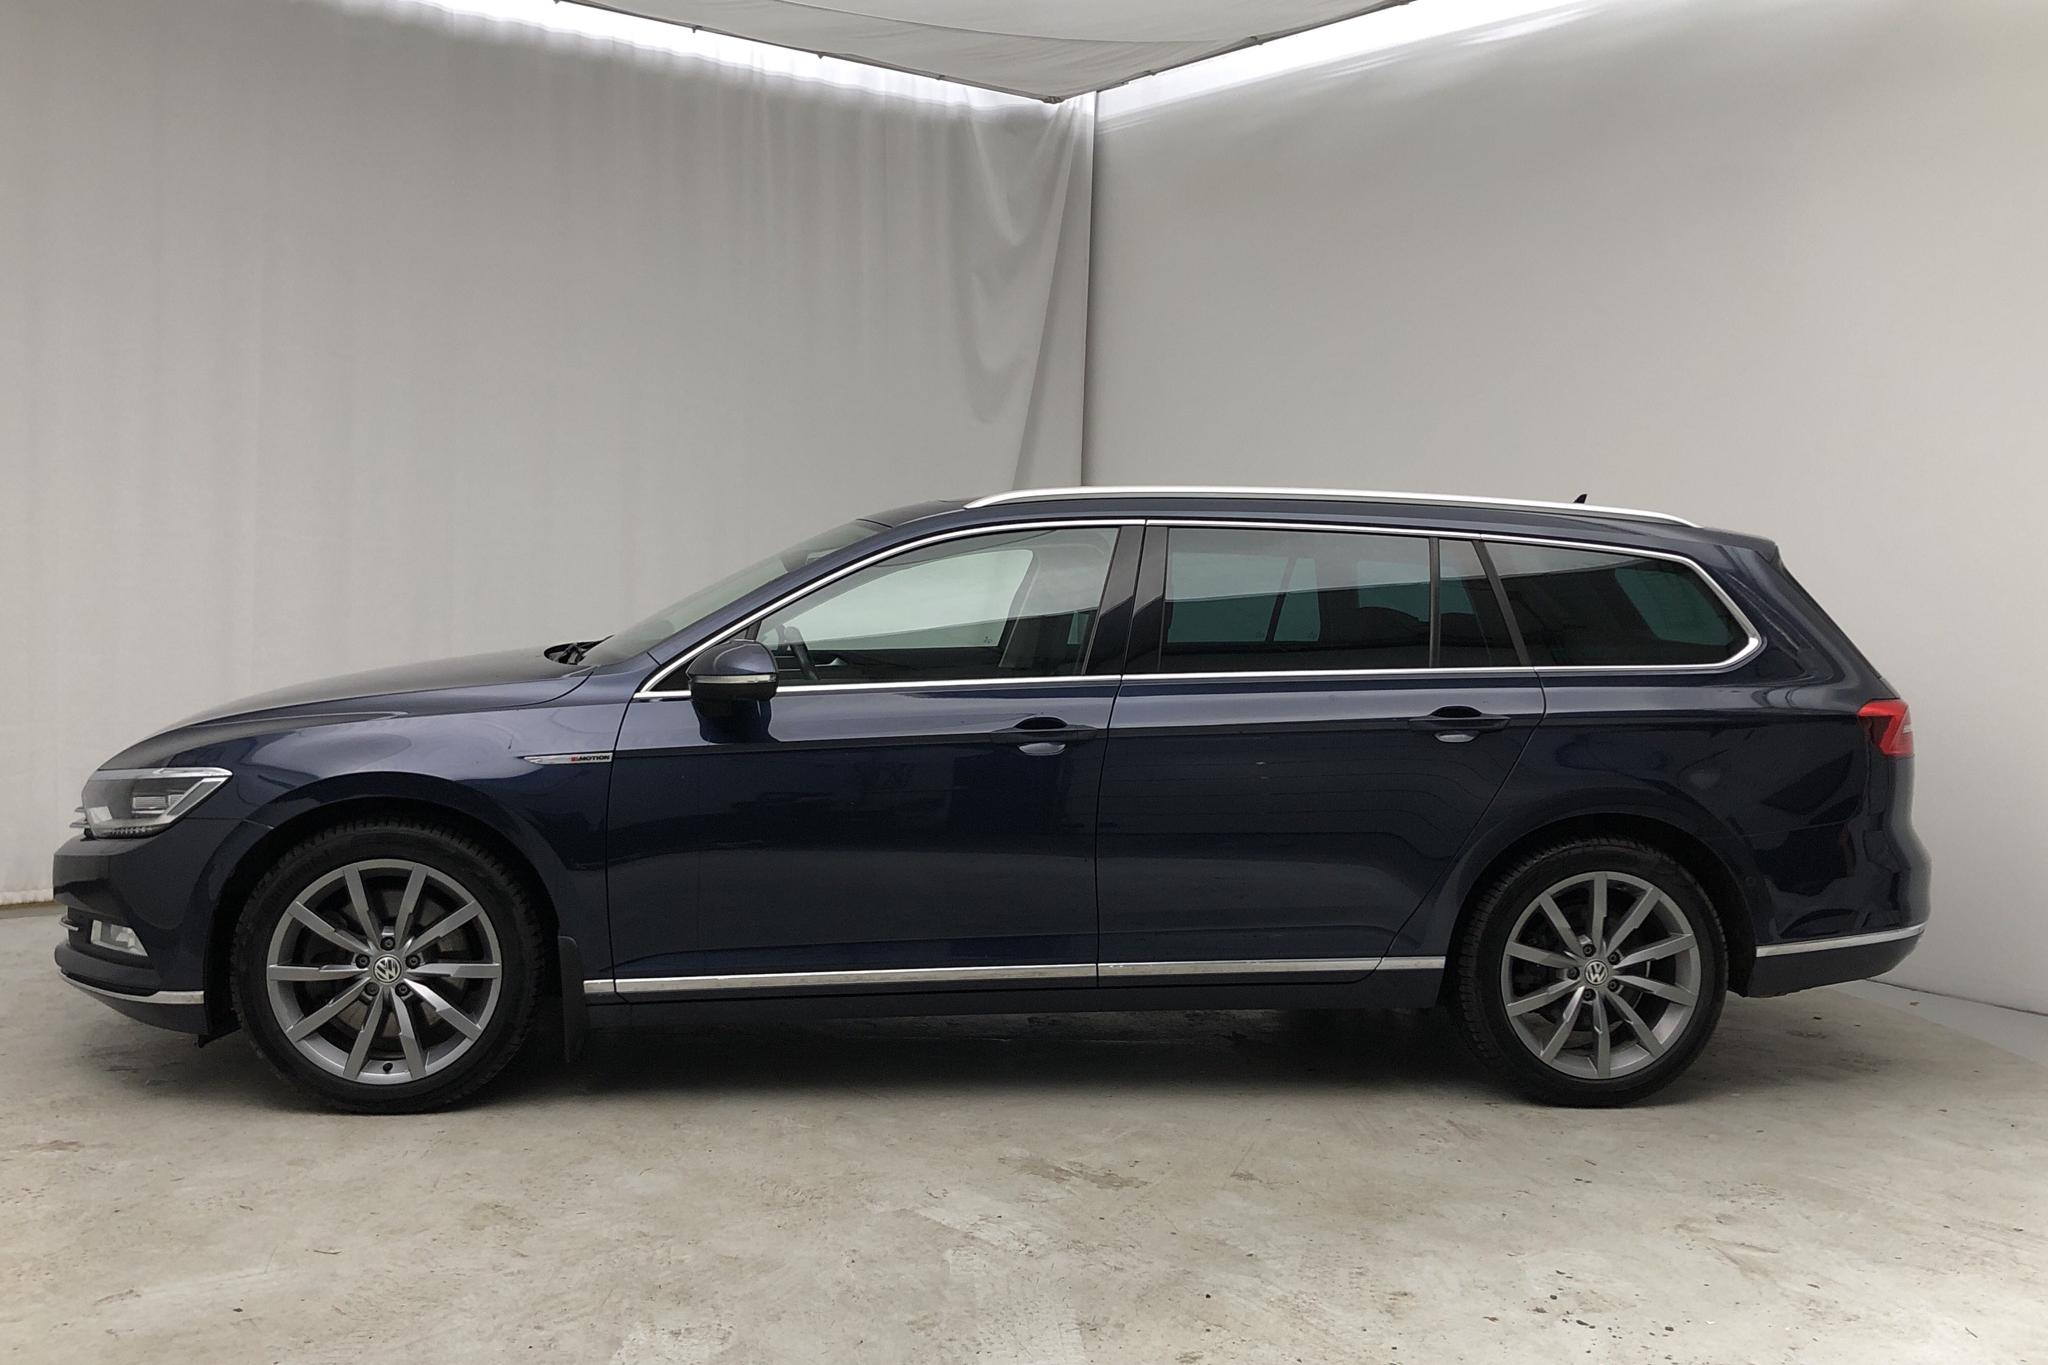 VW Passat 2.0 TDI BiTurbo Sportscombi 4MOTION (240hk) - 82 460 km - Automatic - Dark Blue - 2017